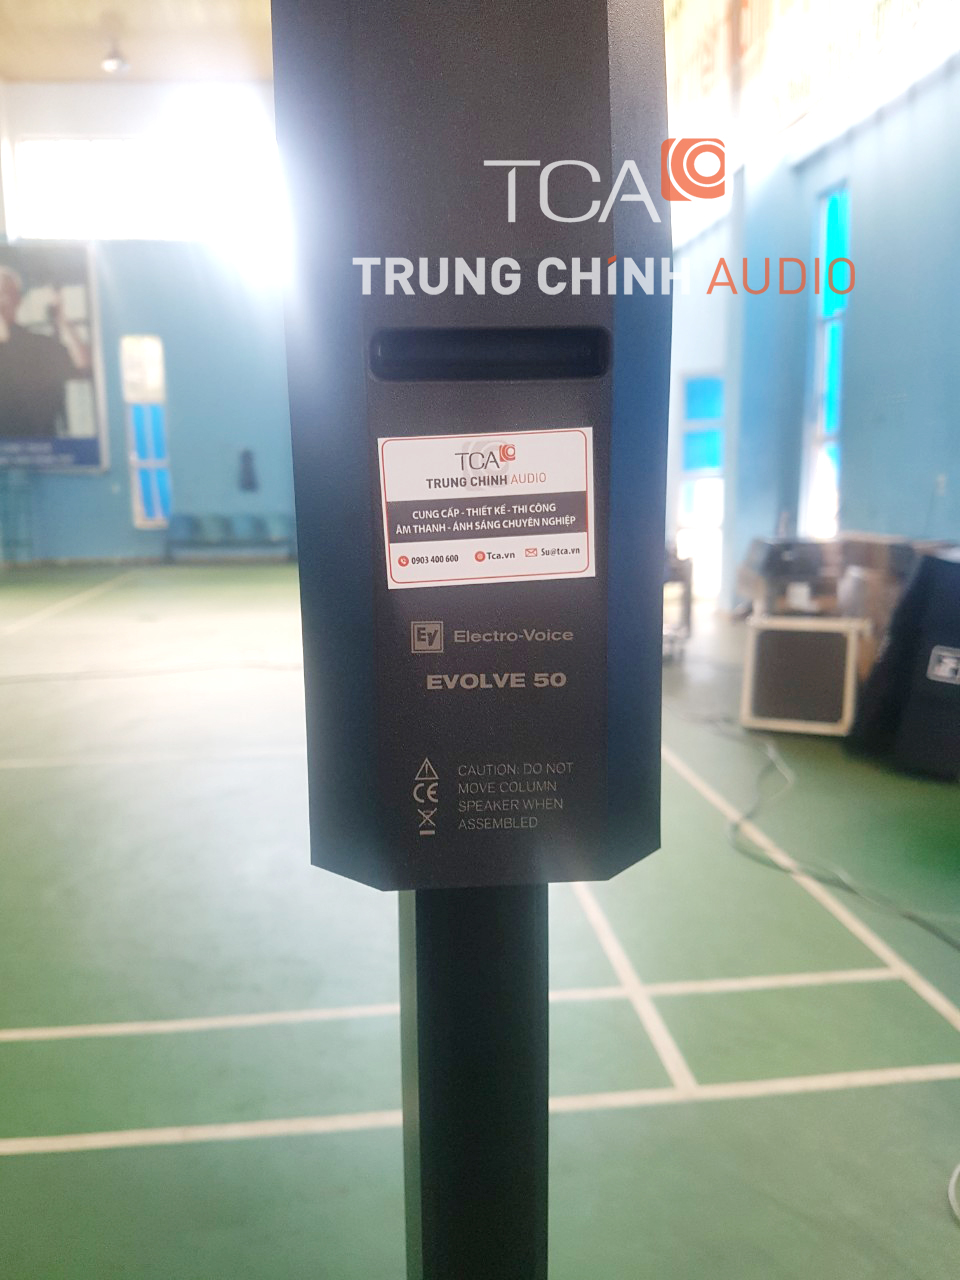 tca-lap-dat-am-thanh-he-thong-thuy-dien-ialy-001